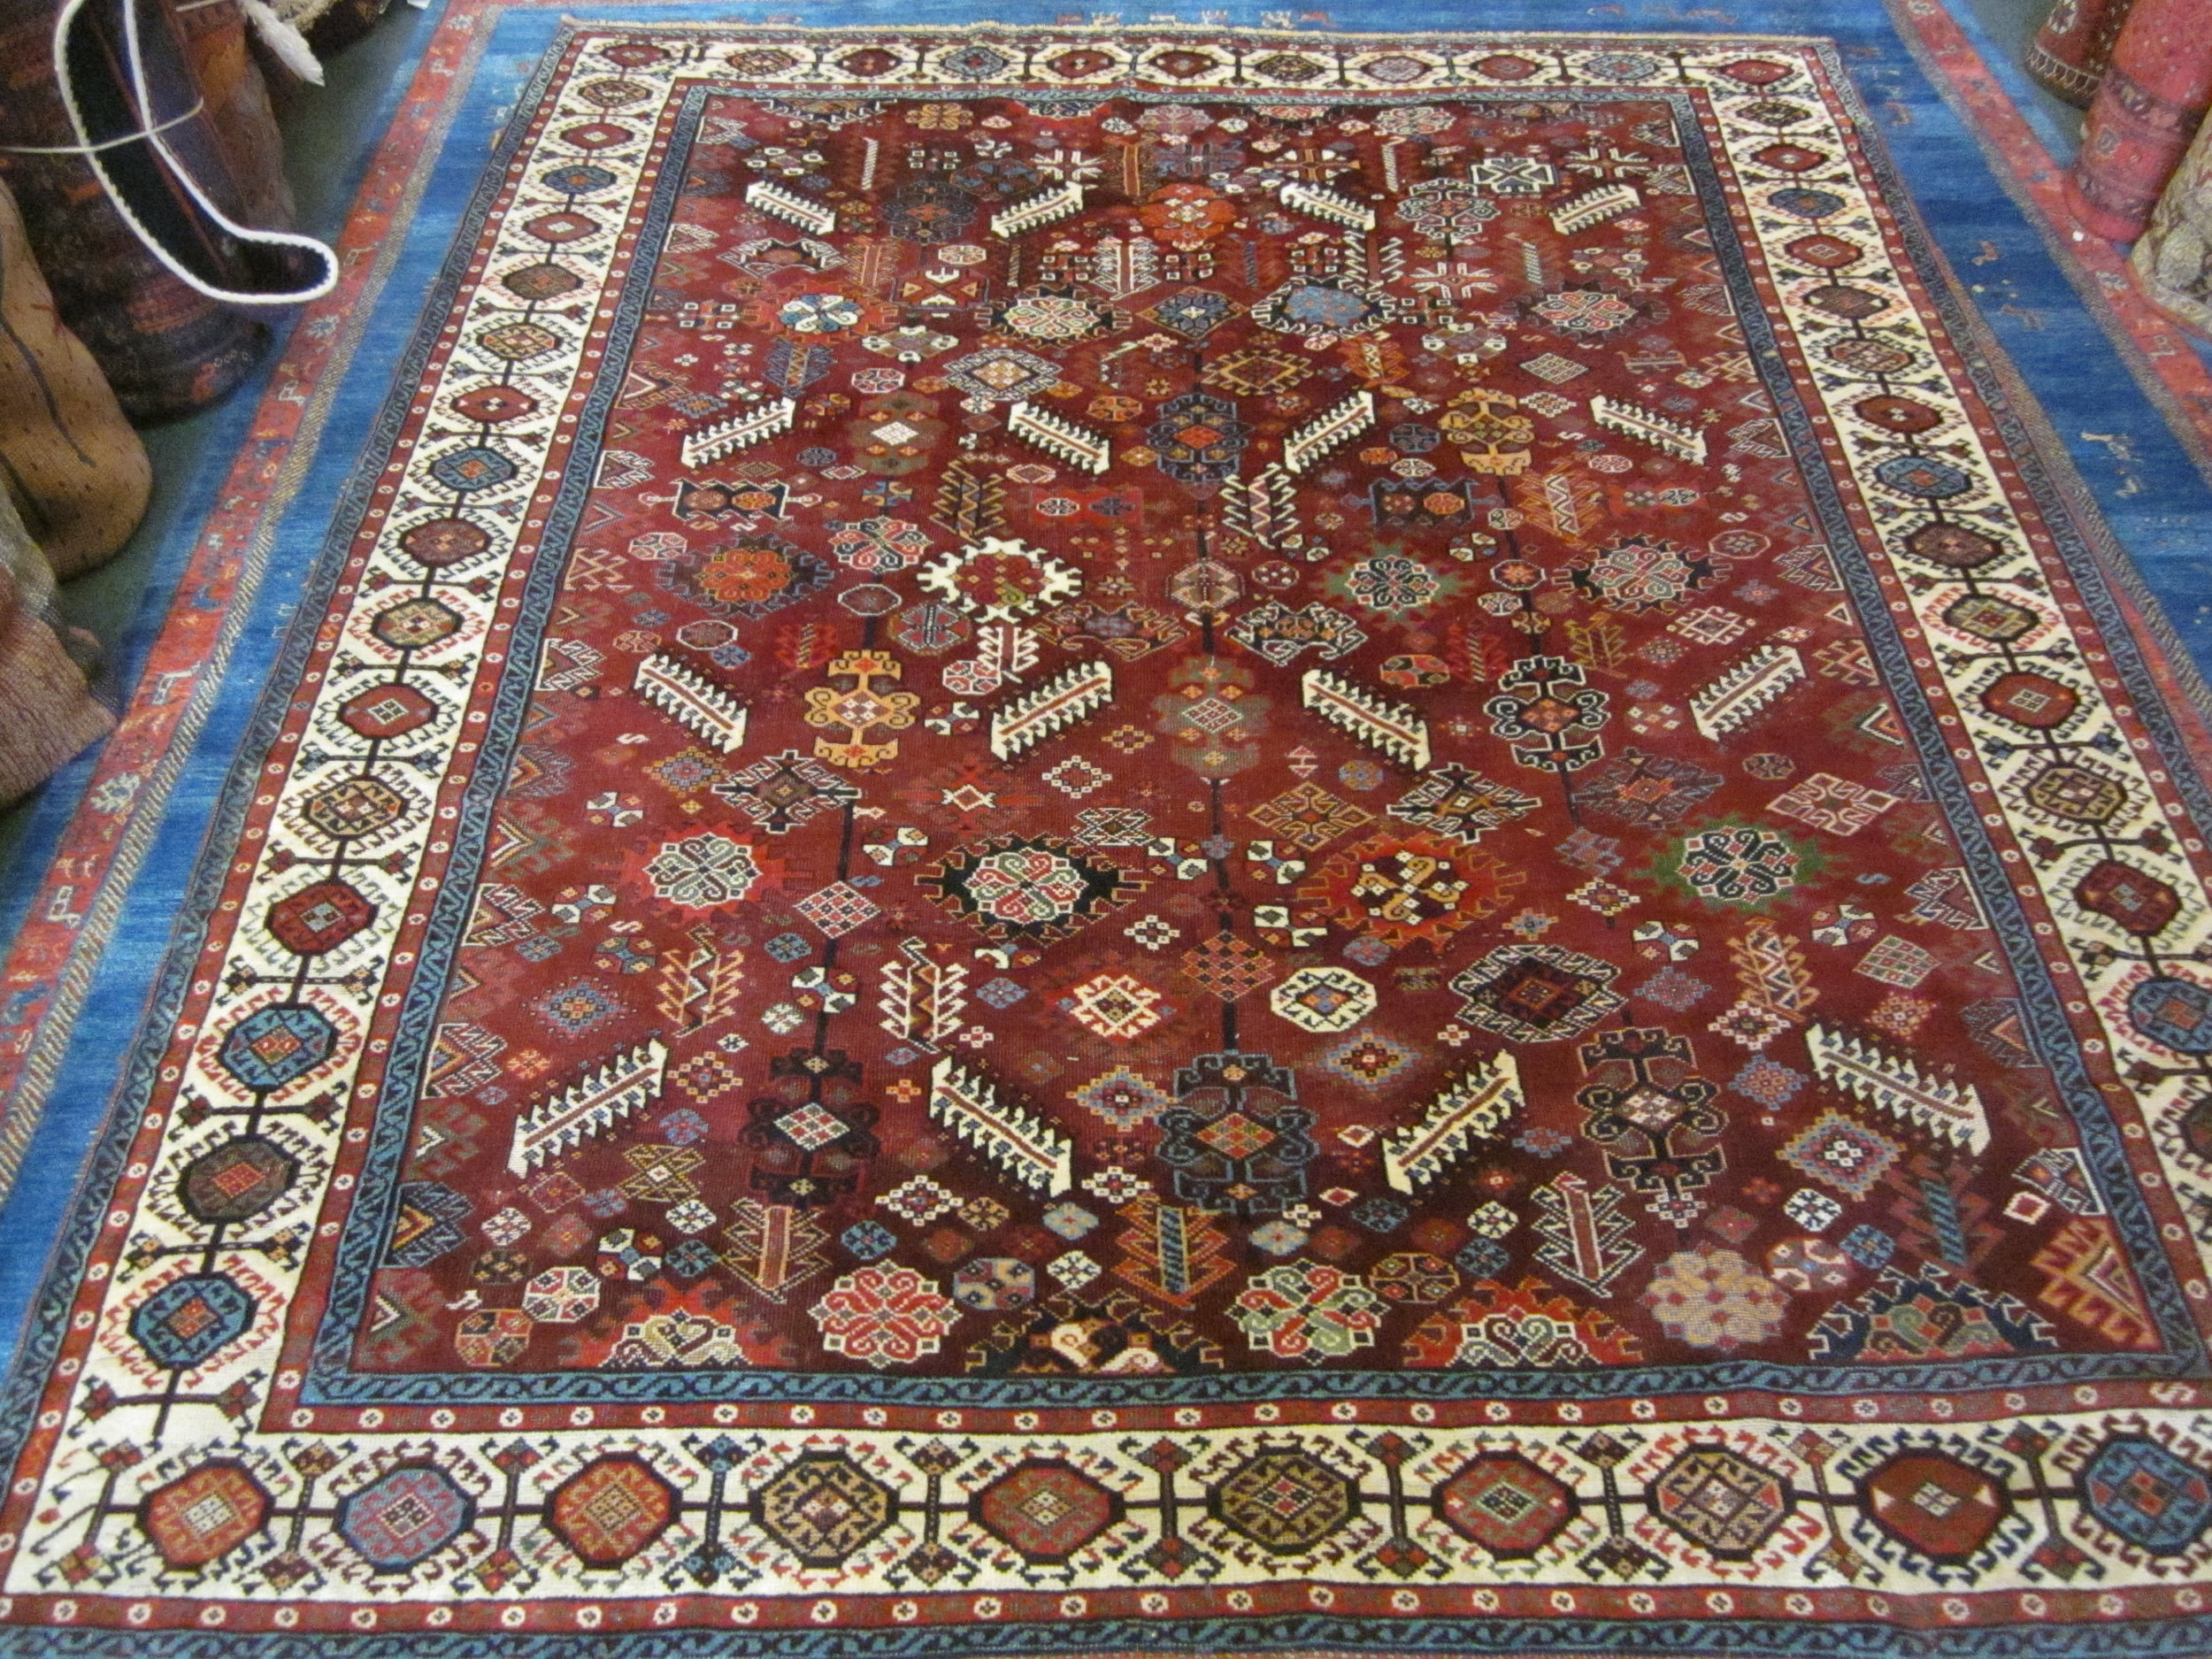 "6'2"" x 7'8"" Antique Shekarlu Qashqai rug. Circa 1860. Finely woven with deeply saturated colors in glistening jewel tones."